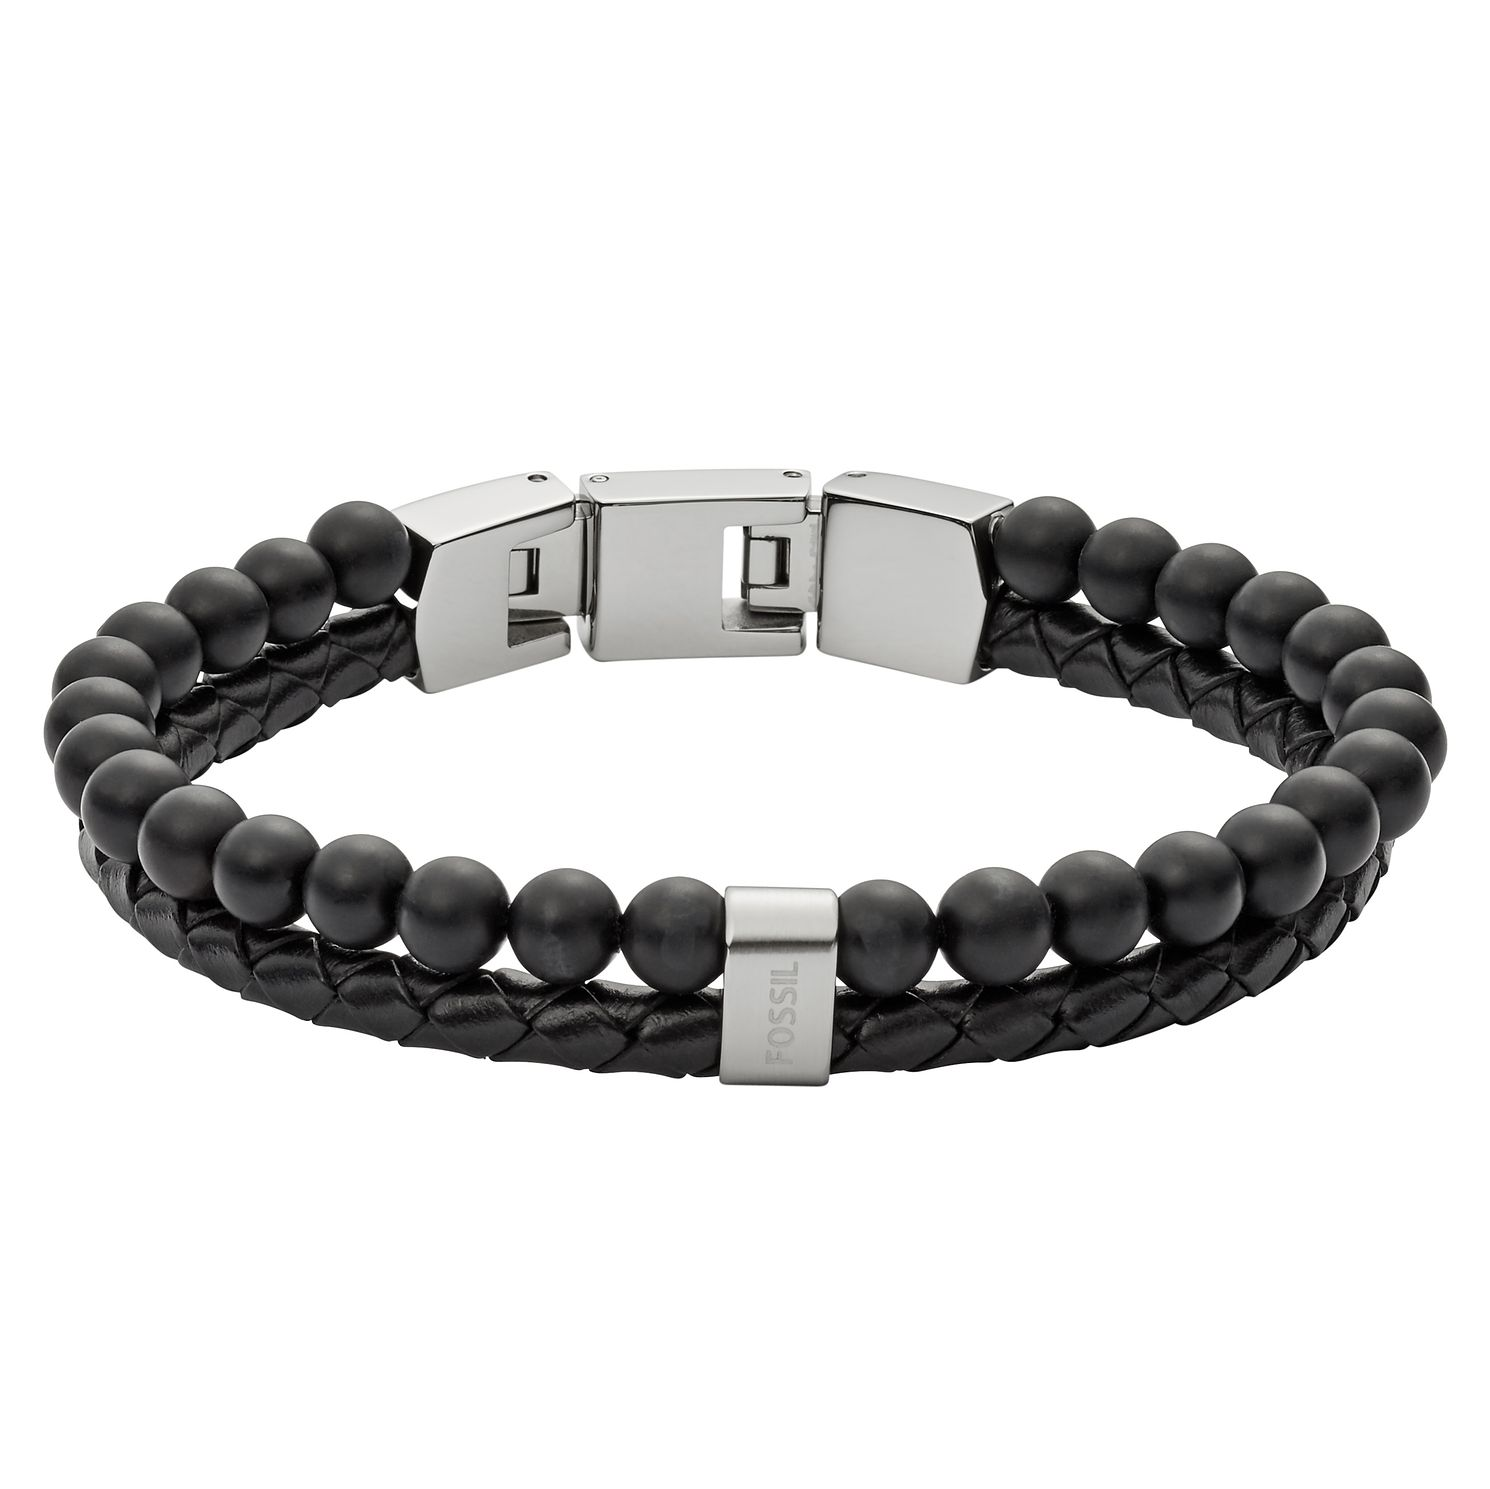 Fossil Men's Stainless Steel Black Leather Bead Bracelet - Product number 8817227